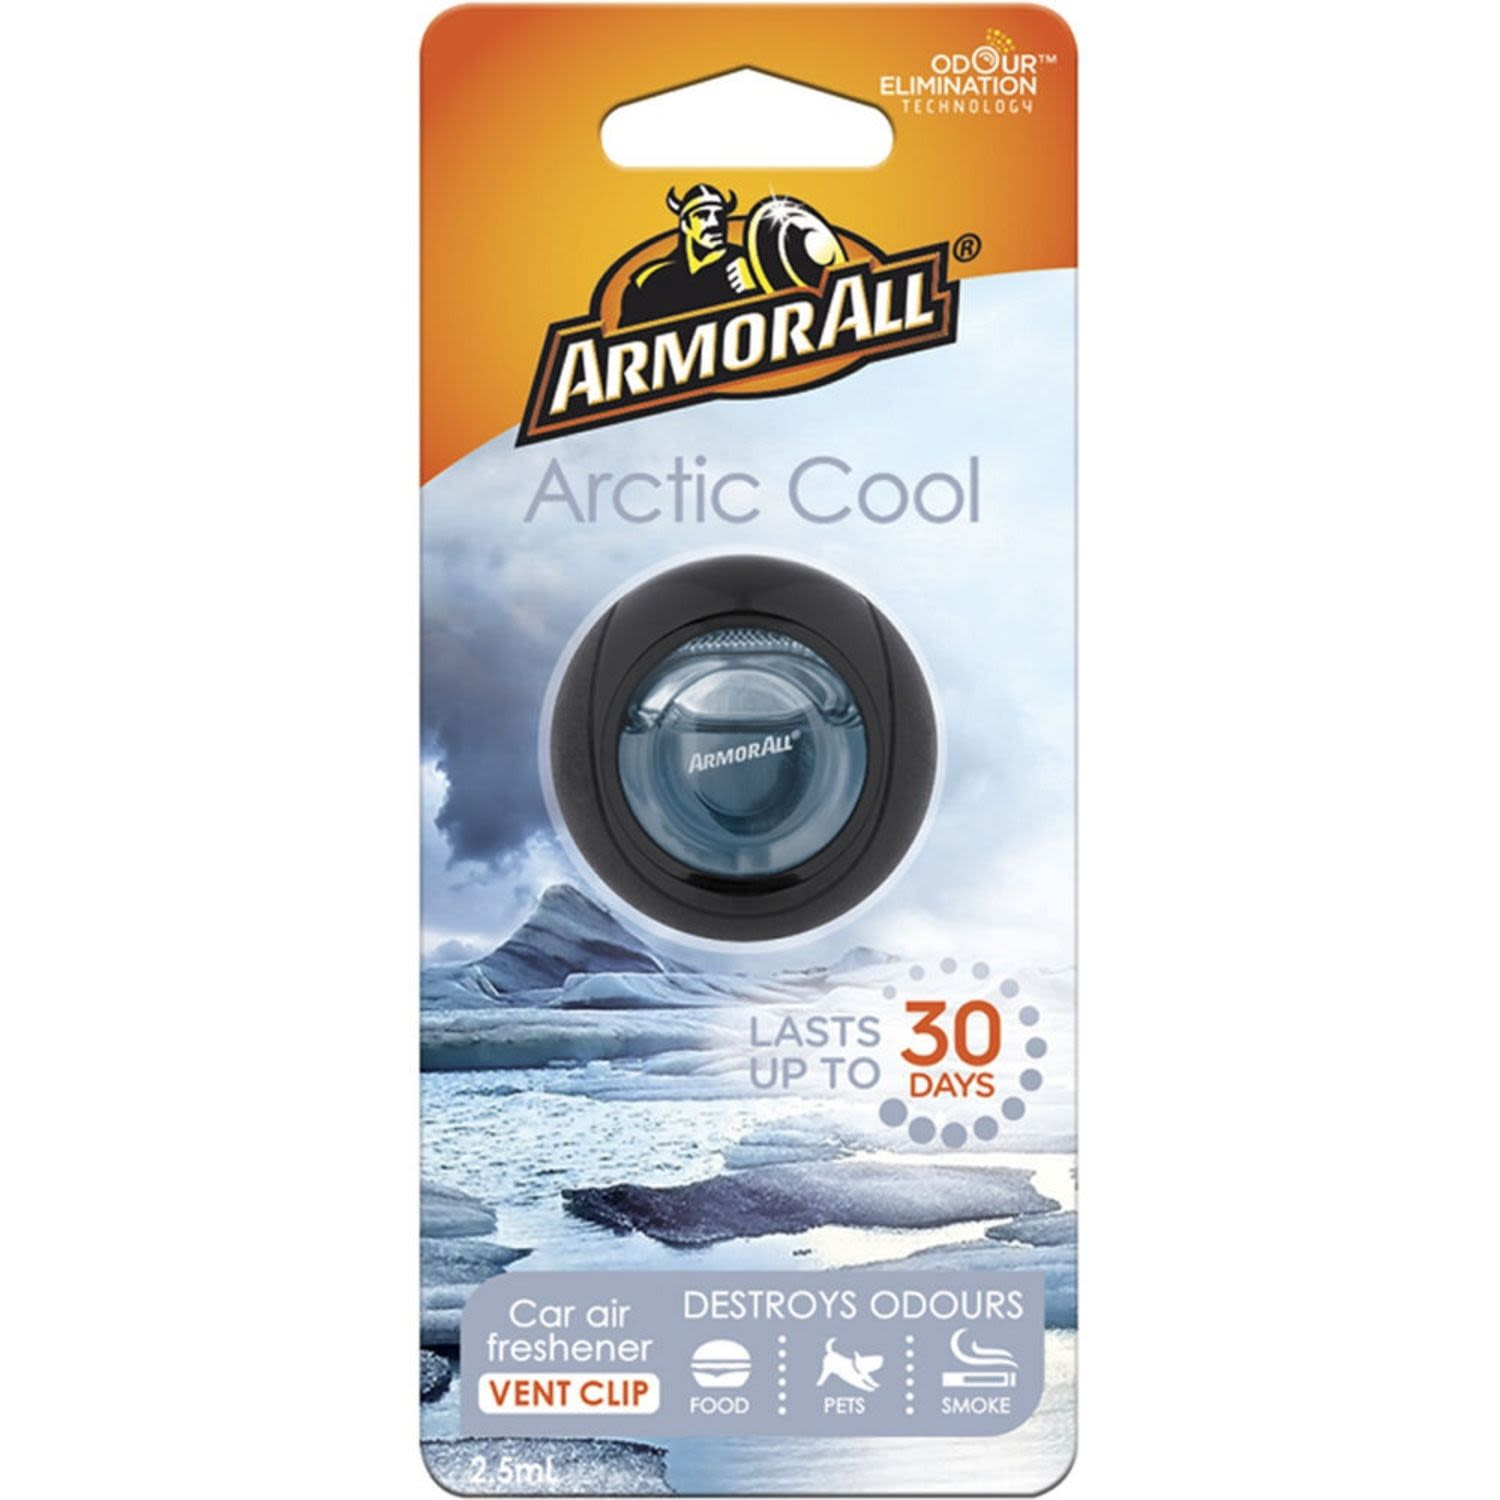 Armor All Air Freshener Arctic Cool, 2.5 Millilitre